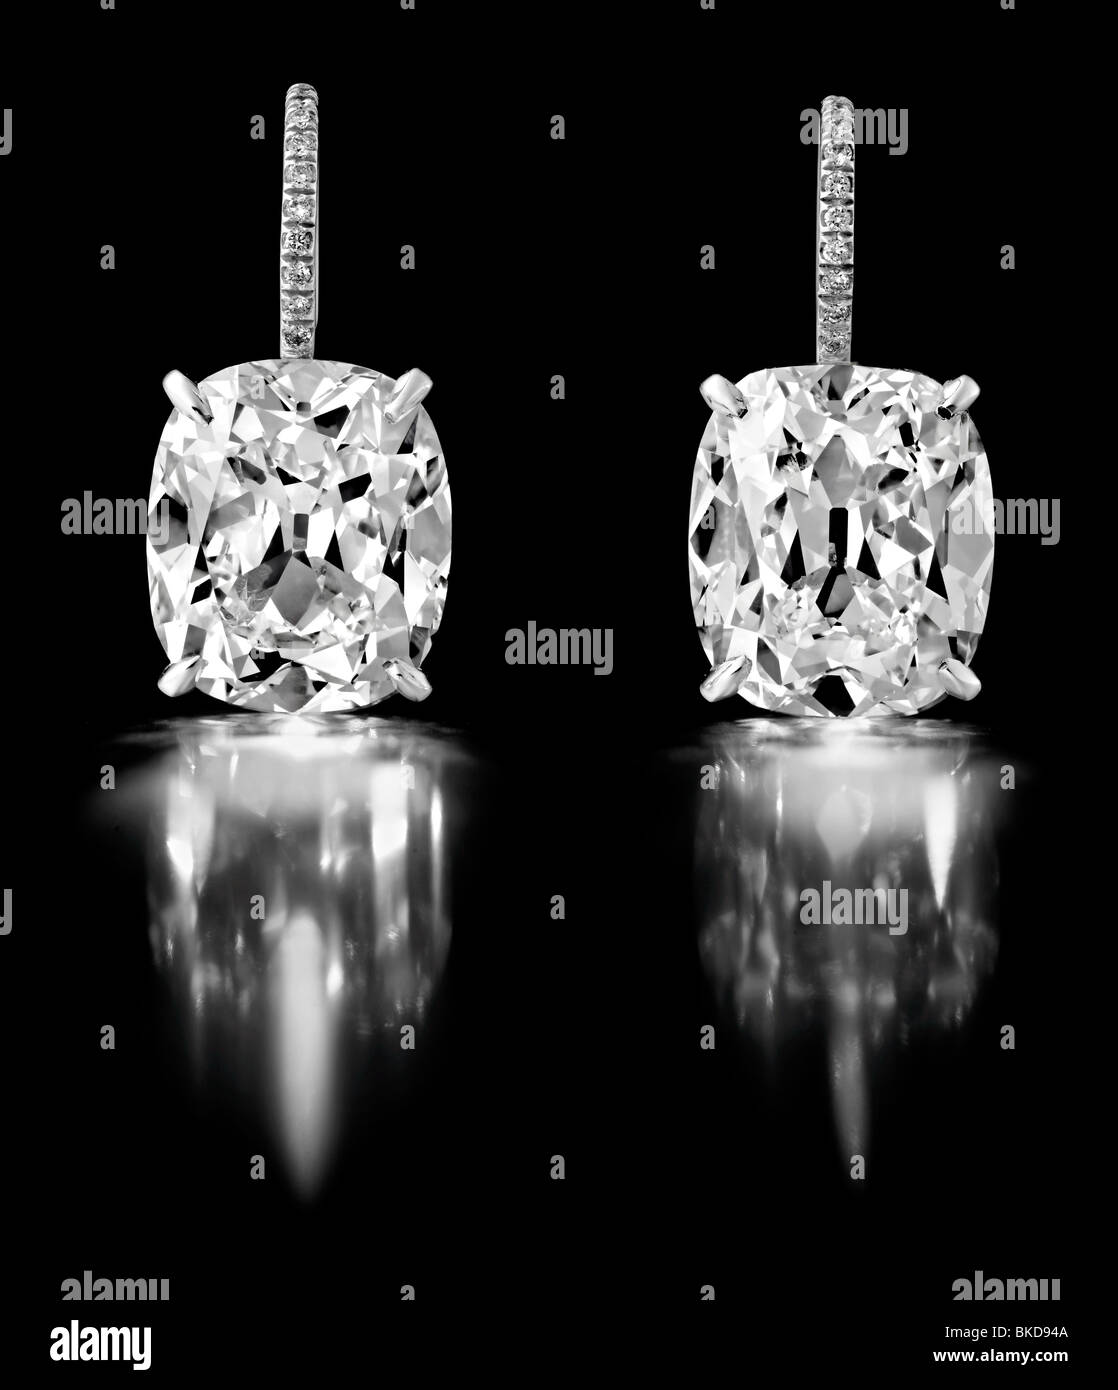 diamond gemstone stylebistro salma jewelry large references studs earrings earring stud hayek